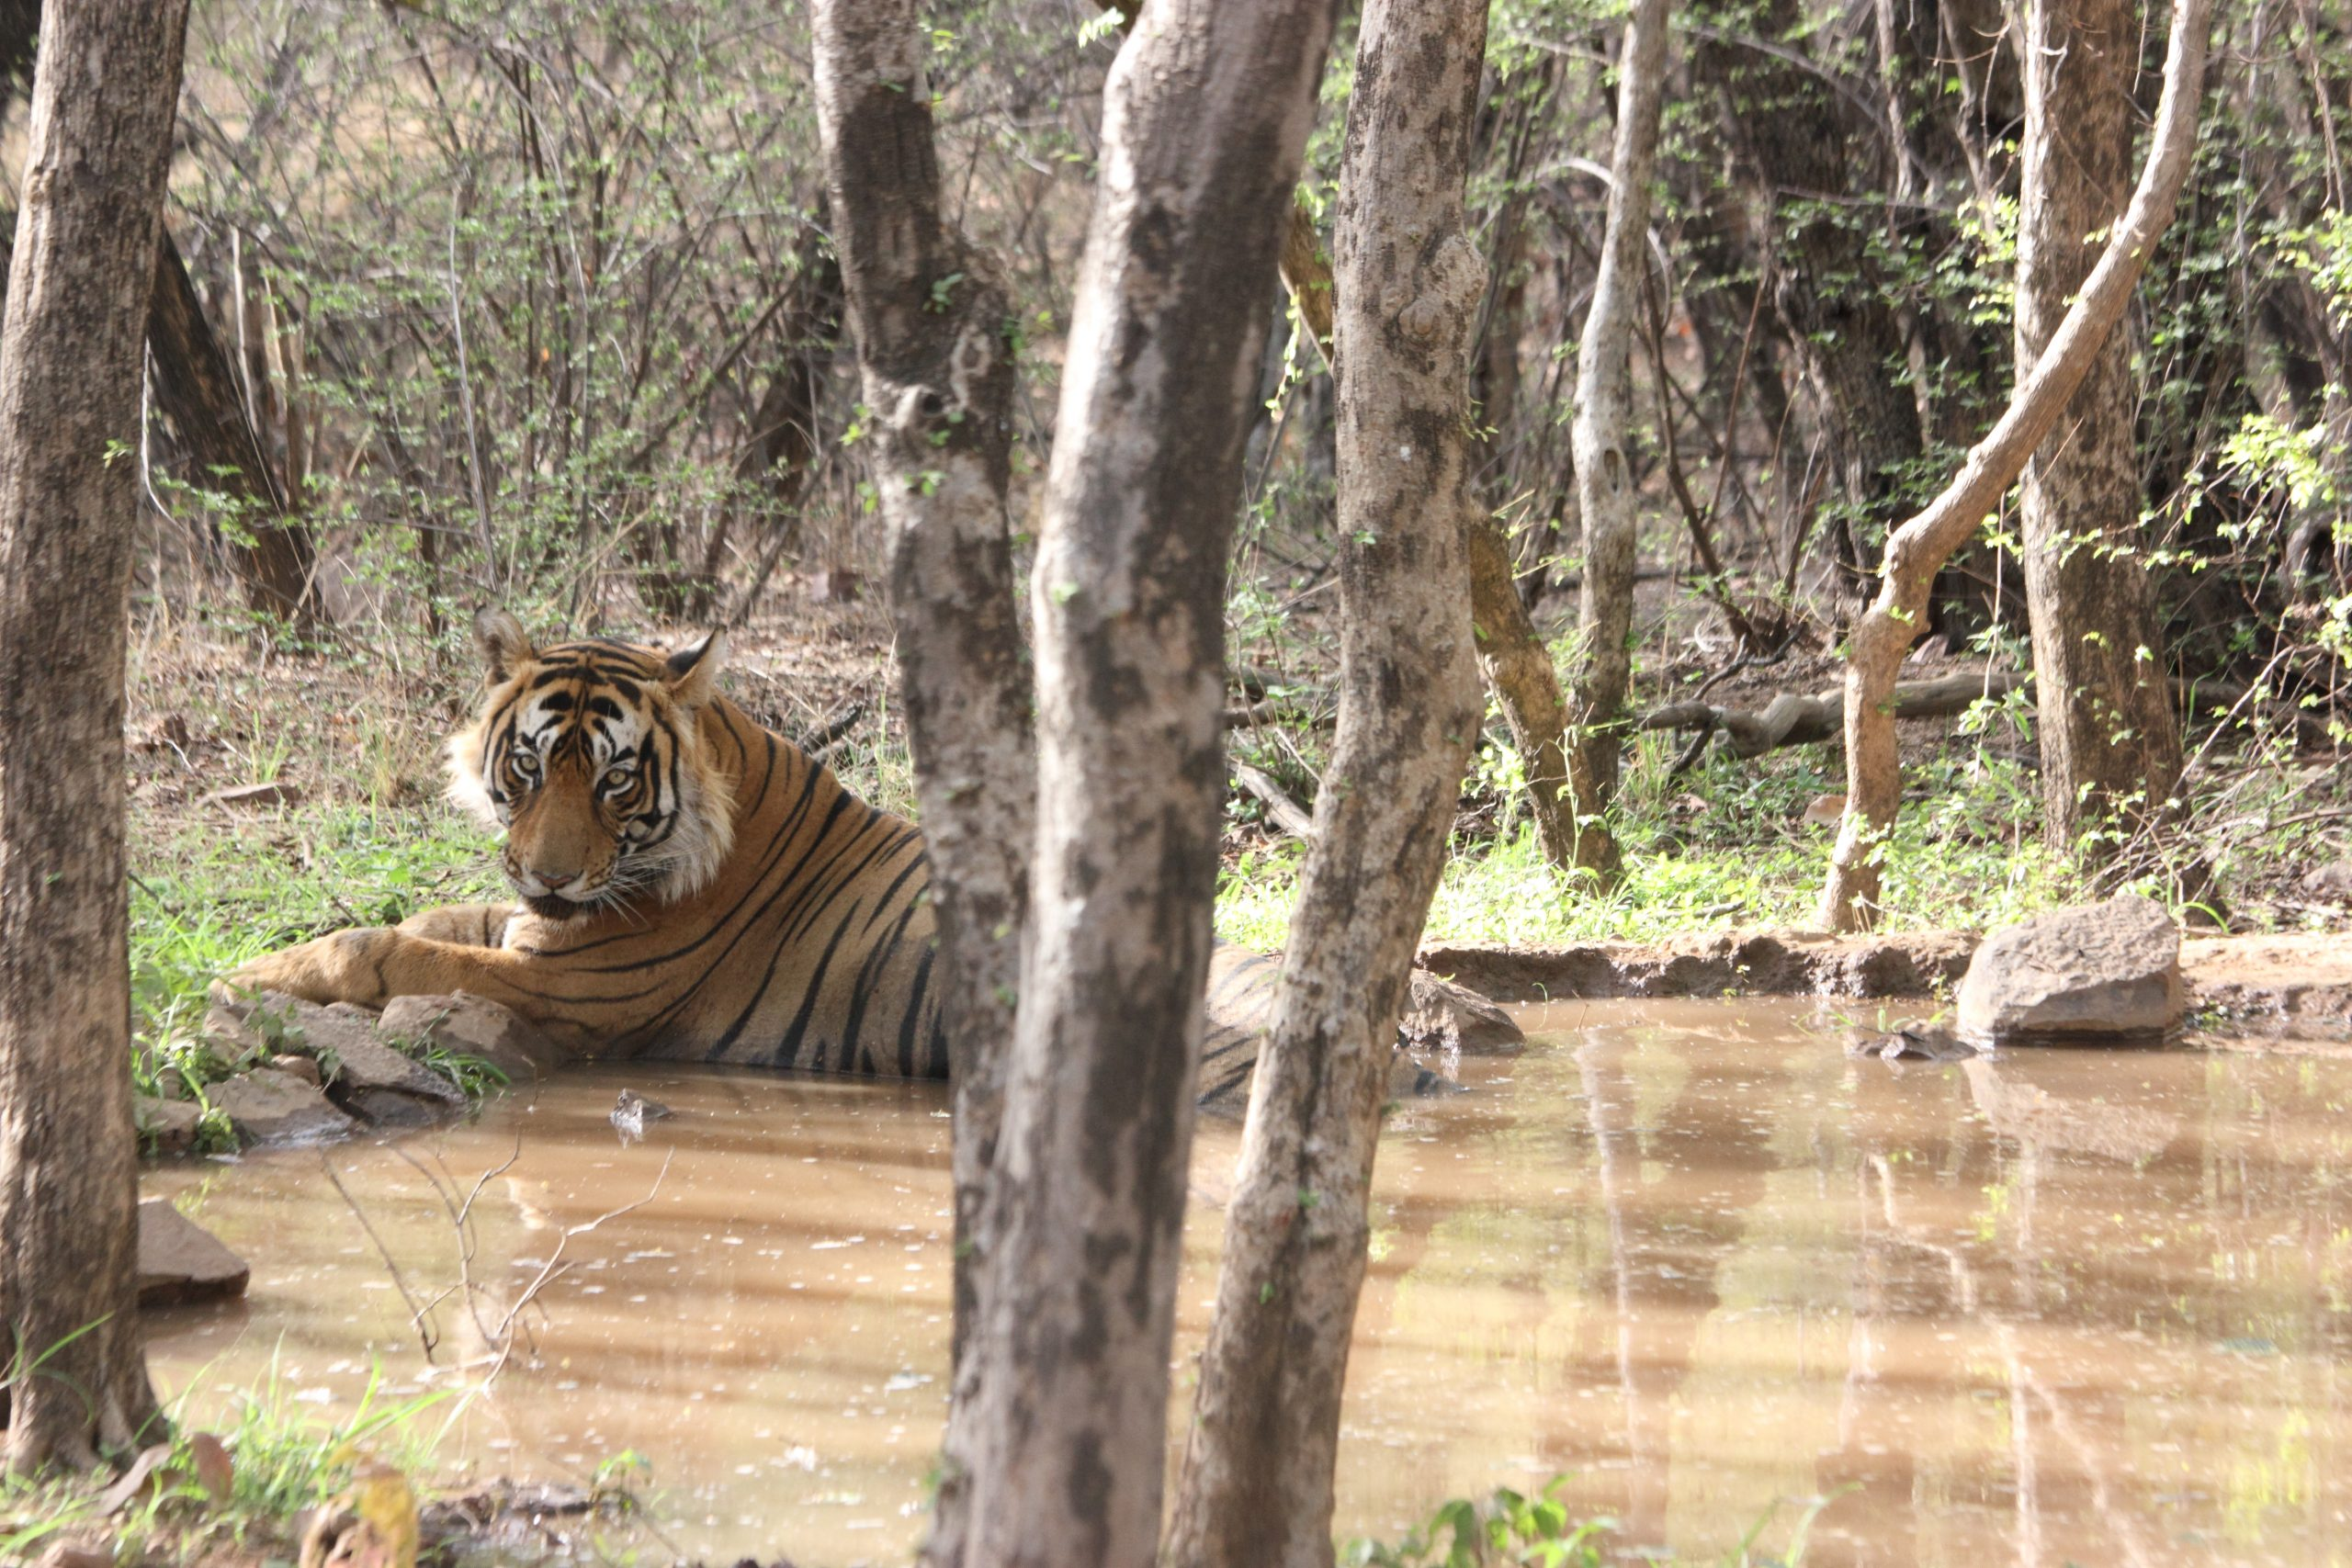 A tiger in a puddle